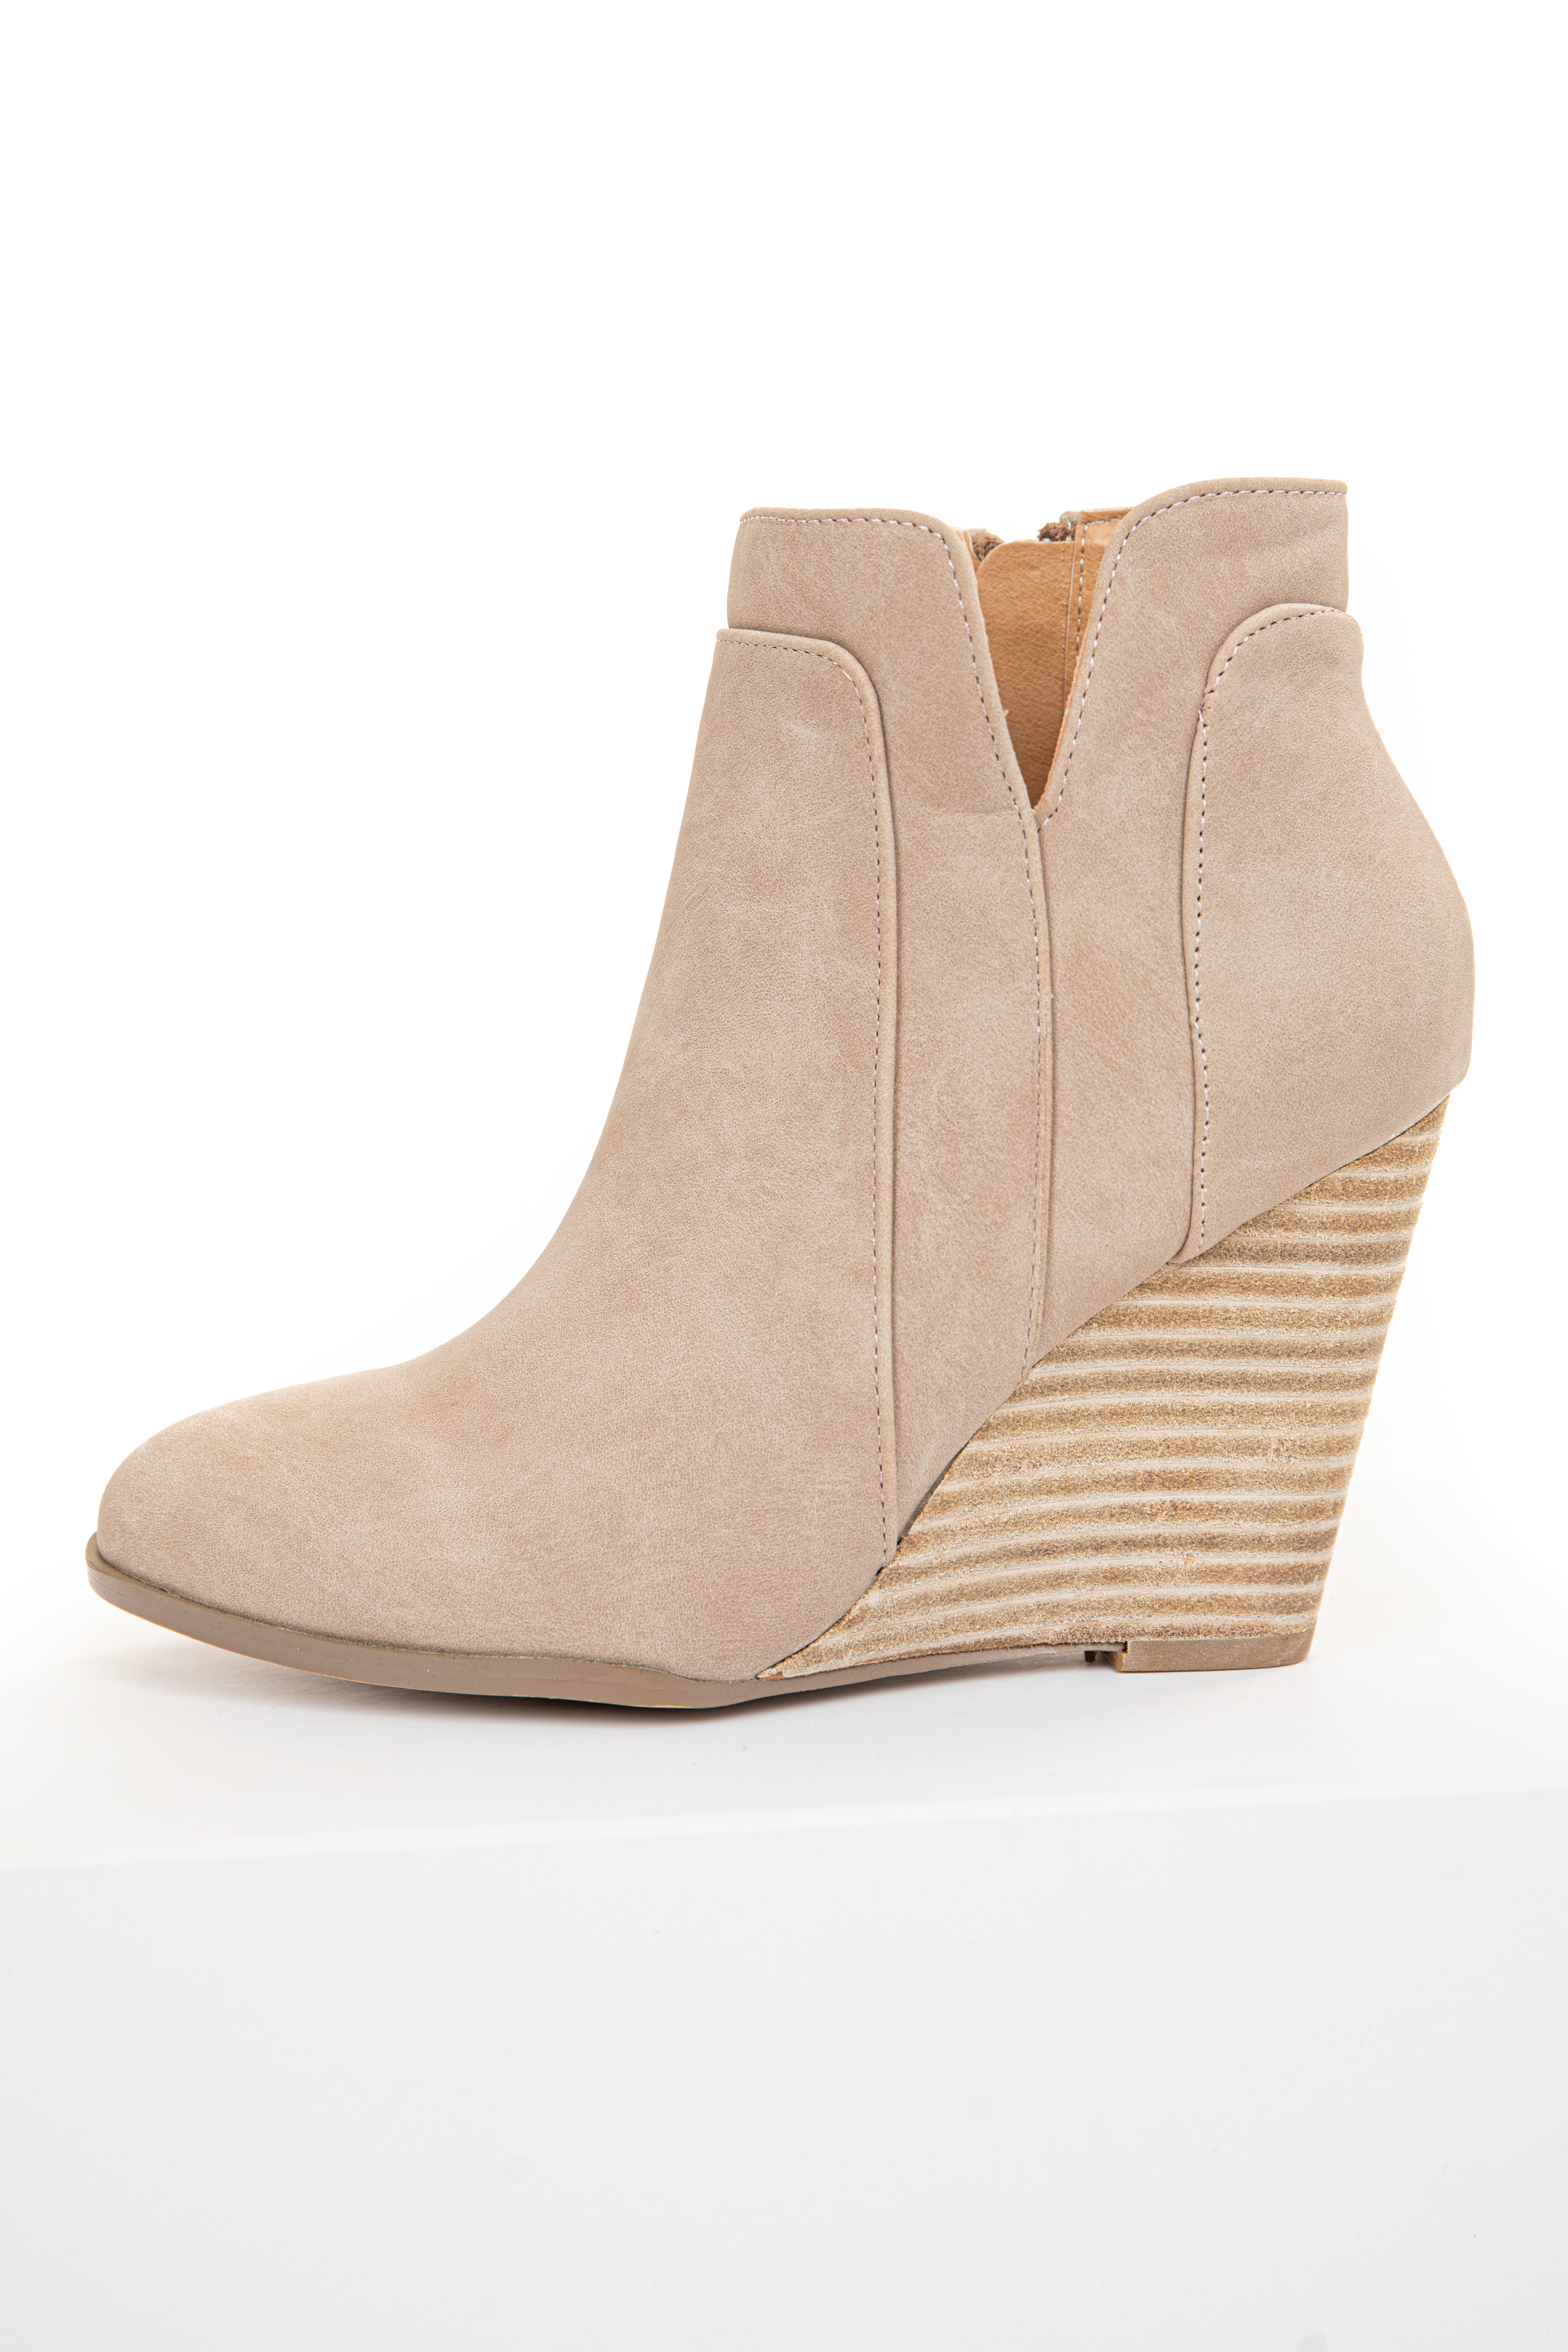 Beige Faux Suede Stacked Wedge Bootie